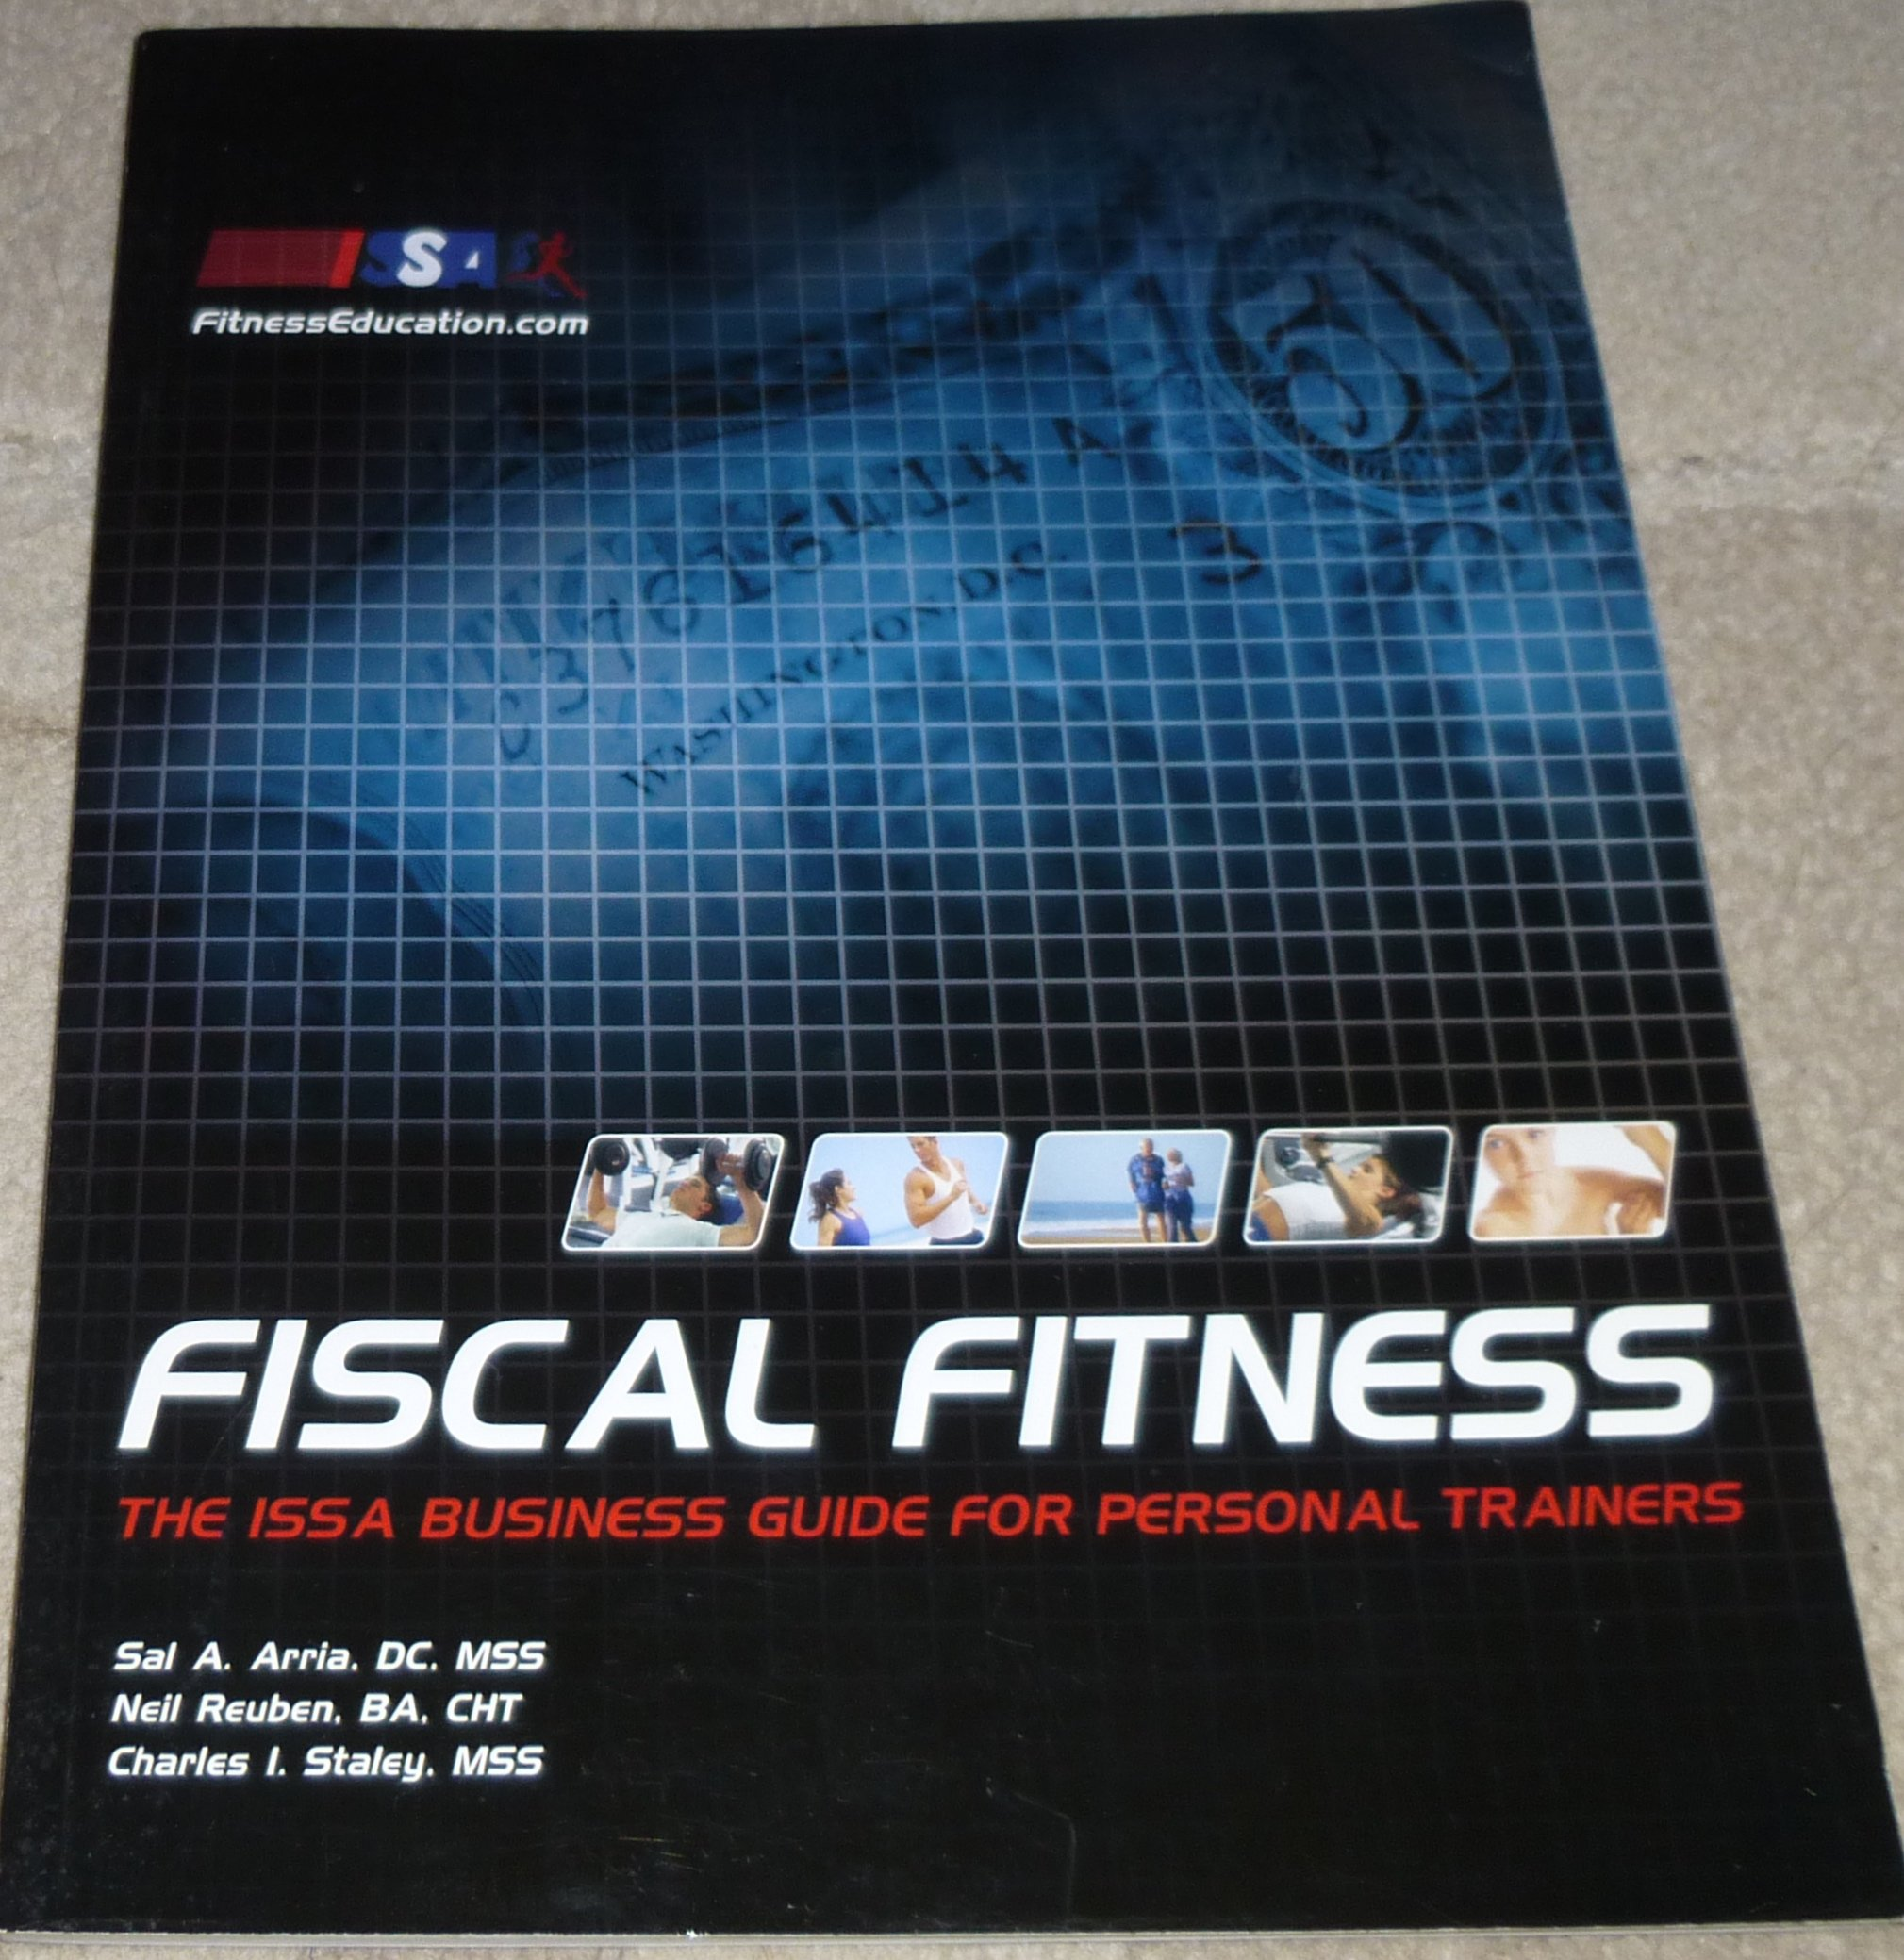 Download Fiscal Fitness (The ISSA Business Guide for Personal Trainers) ePub fb2 ebook